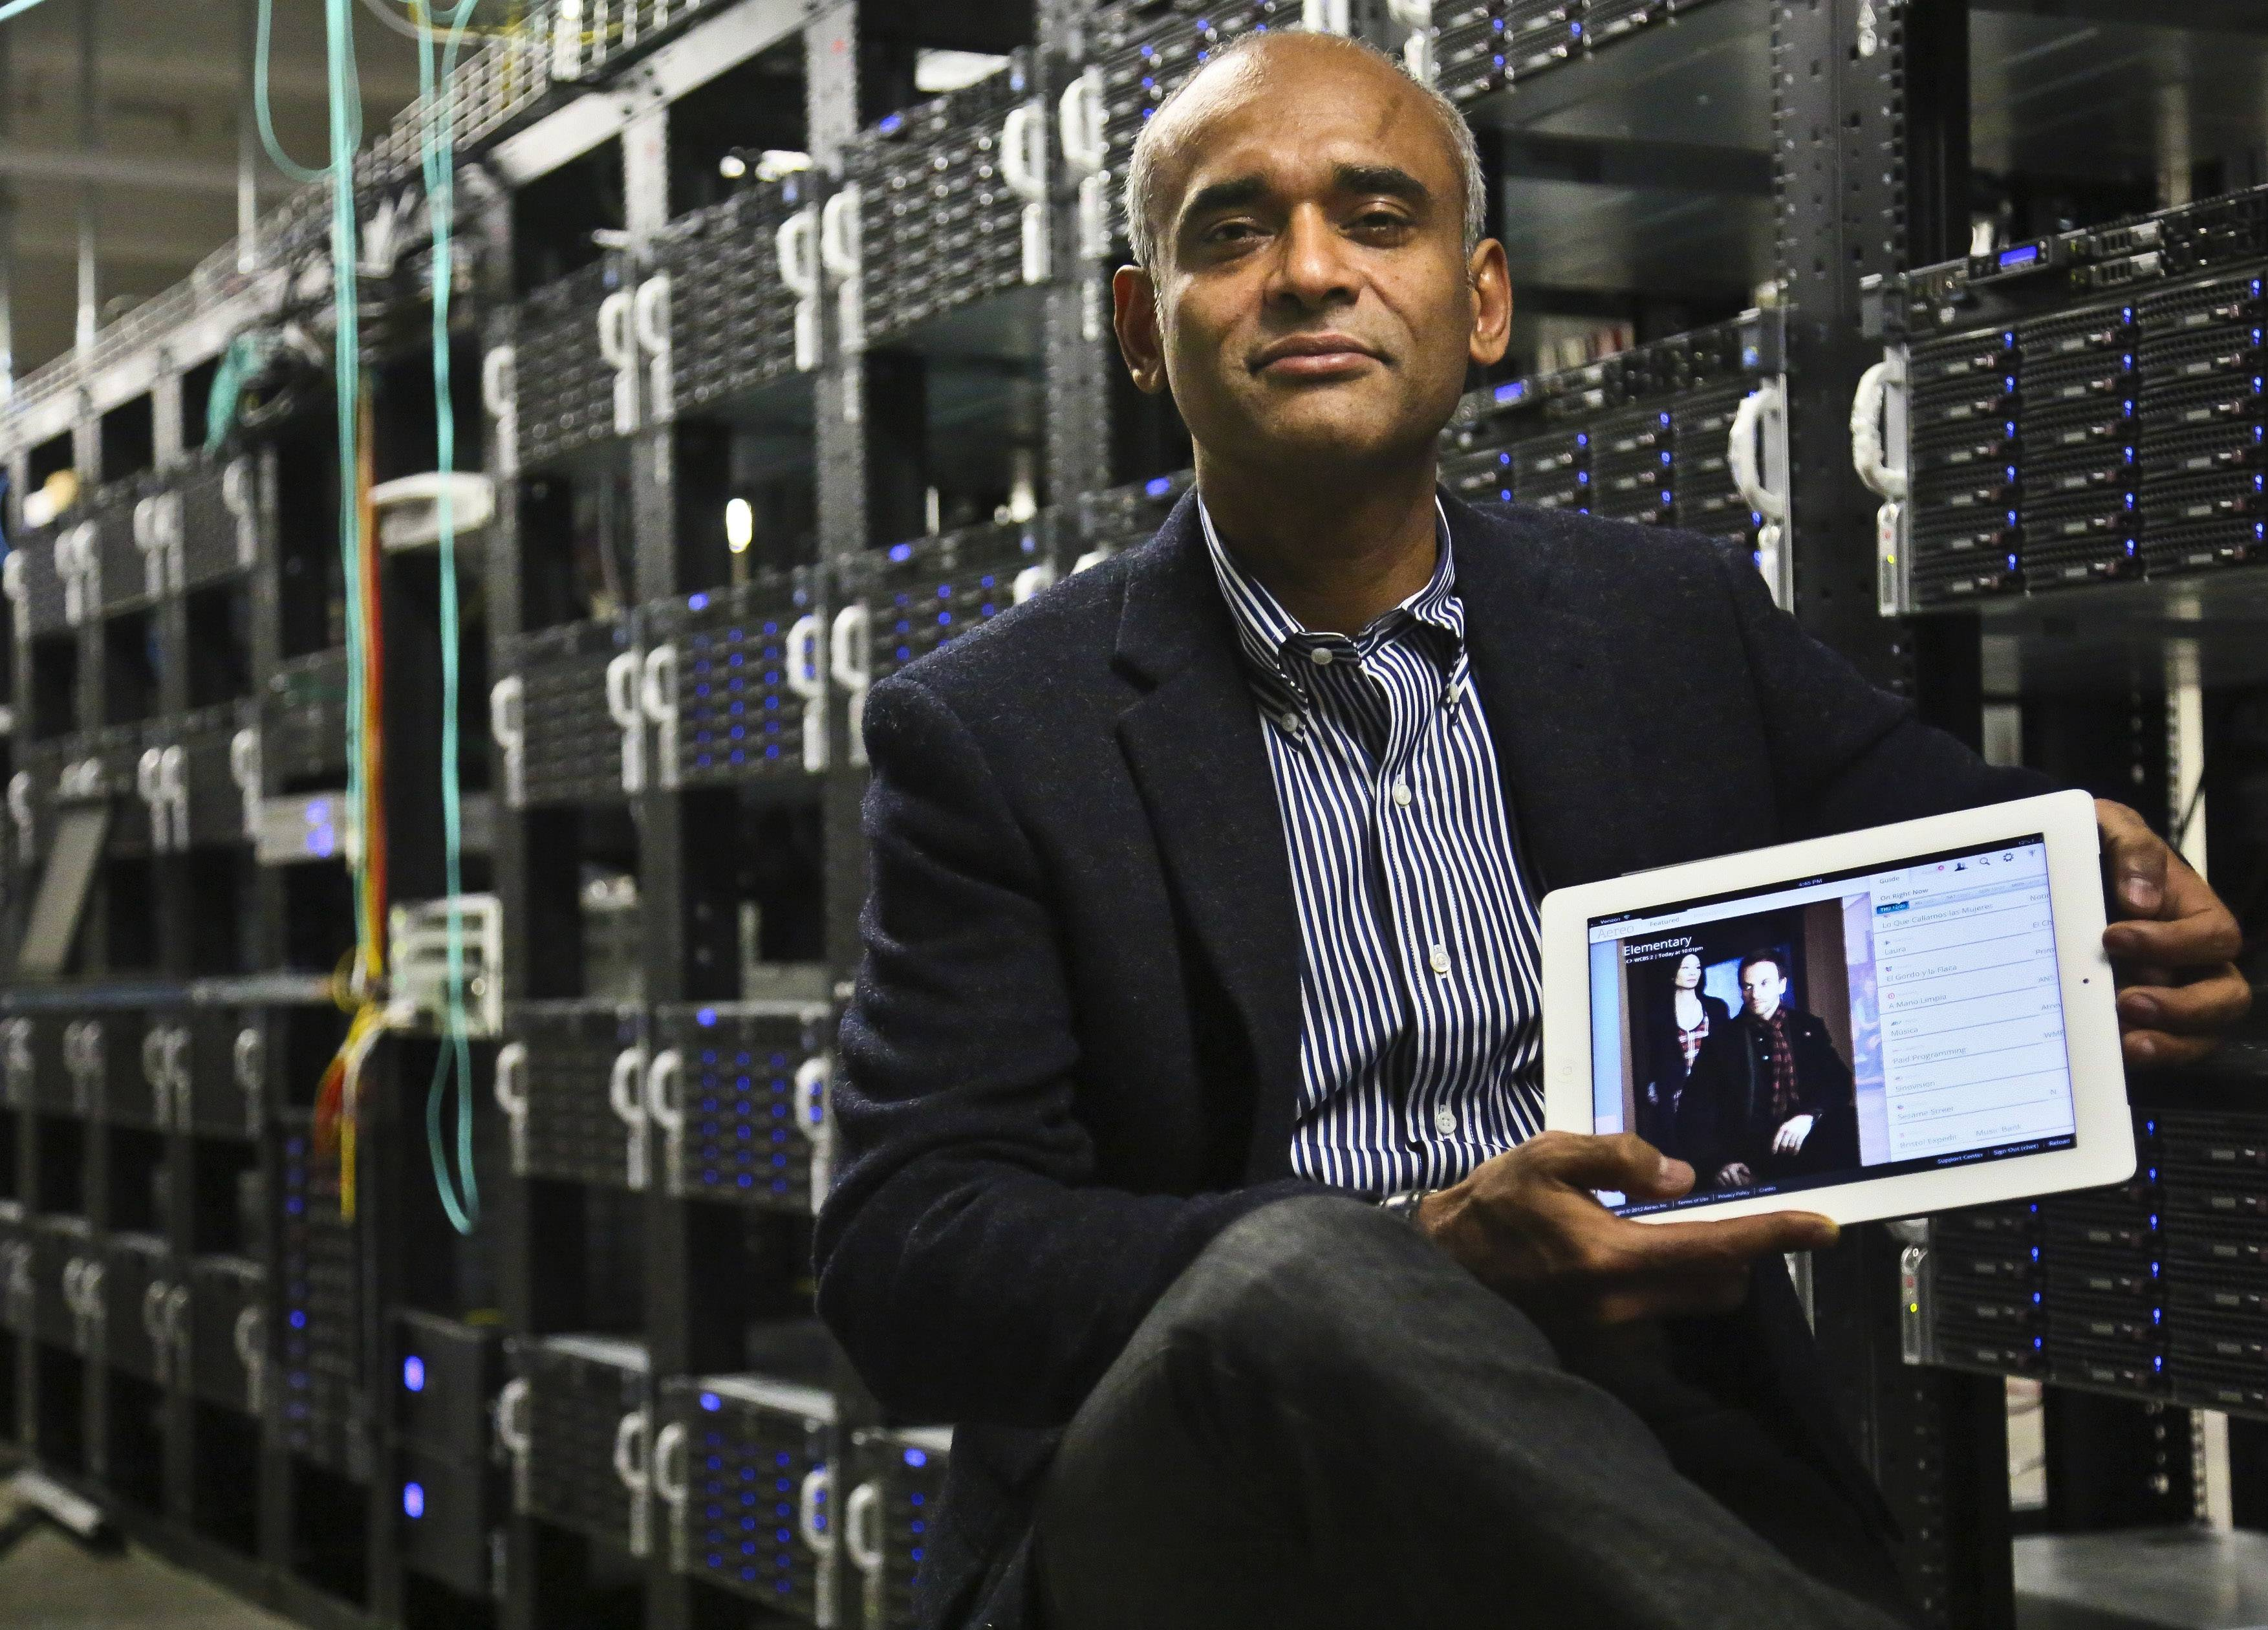 Chet Kanojia, founder and CEO of television-over-the-Internet service Aereo, Inc., shows a tablet displaying his company's technology, in New York. A